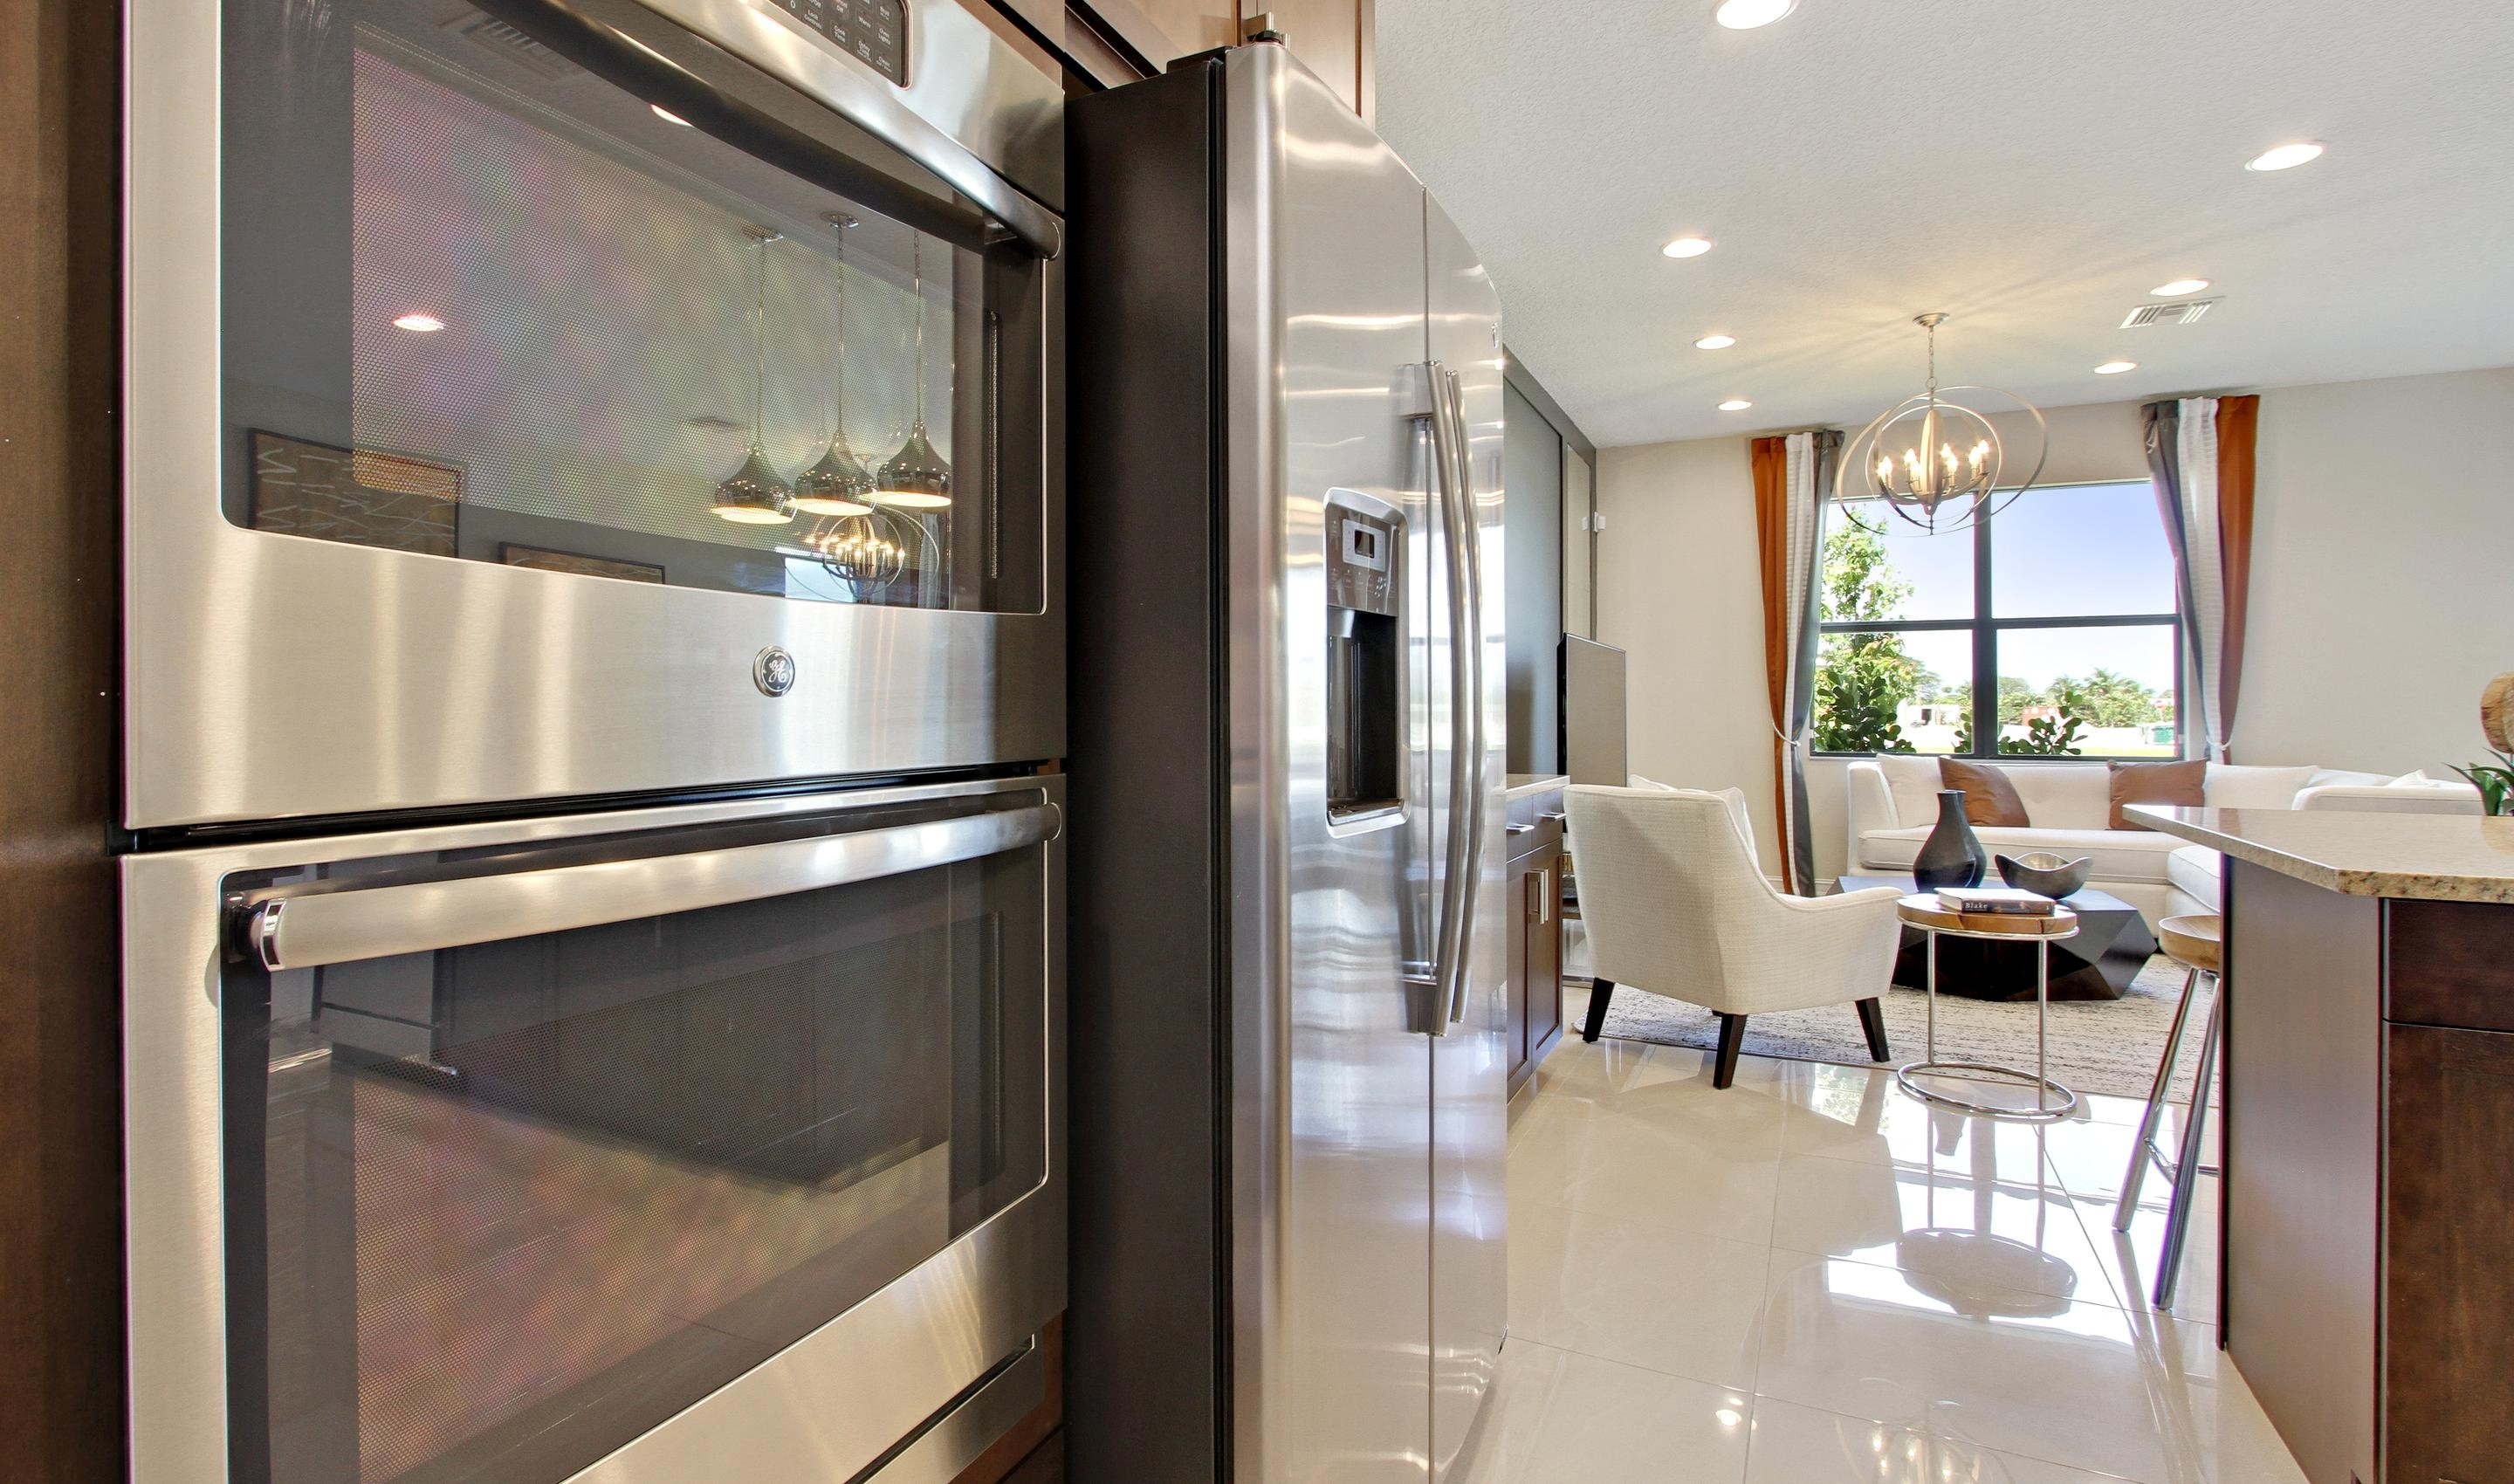 Gourmet kitchen with 2 wall ovens